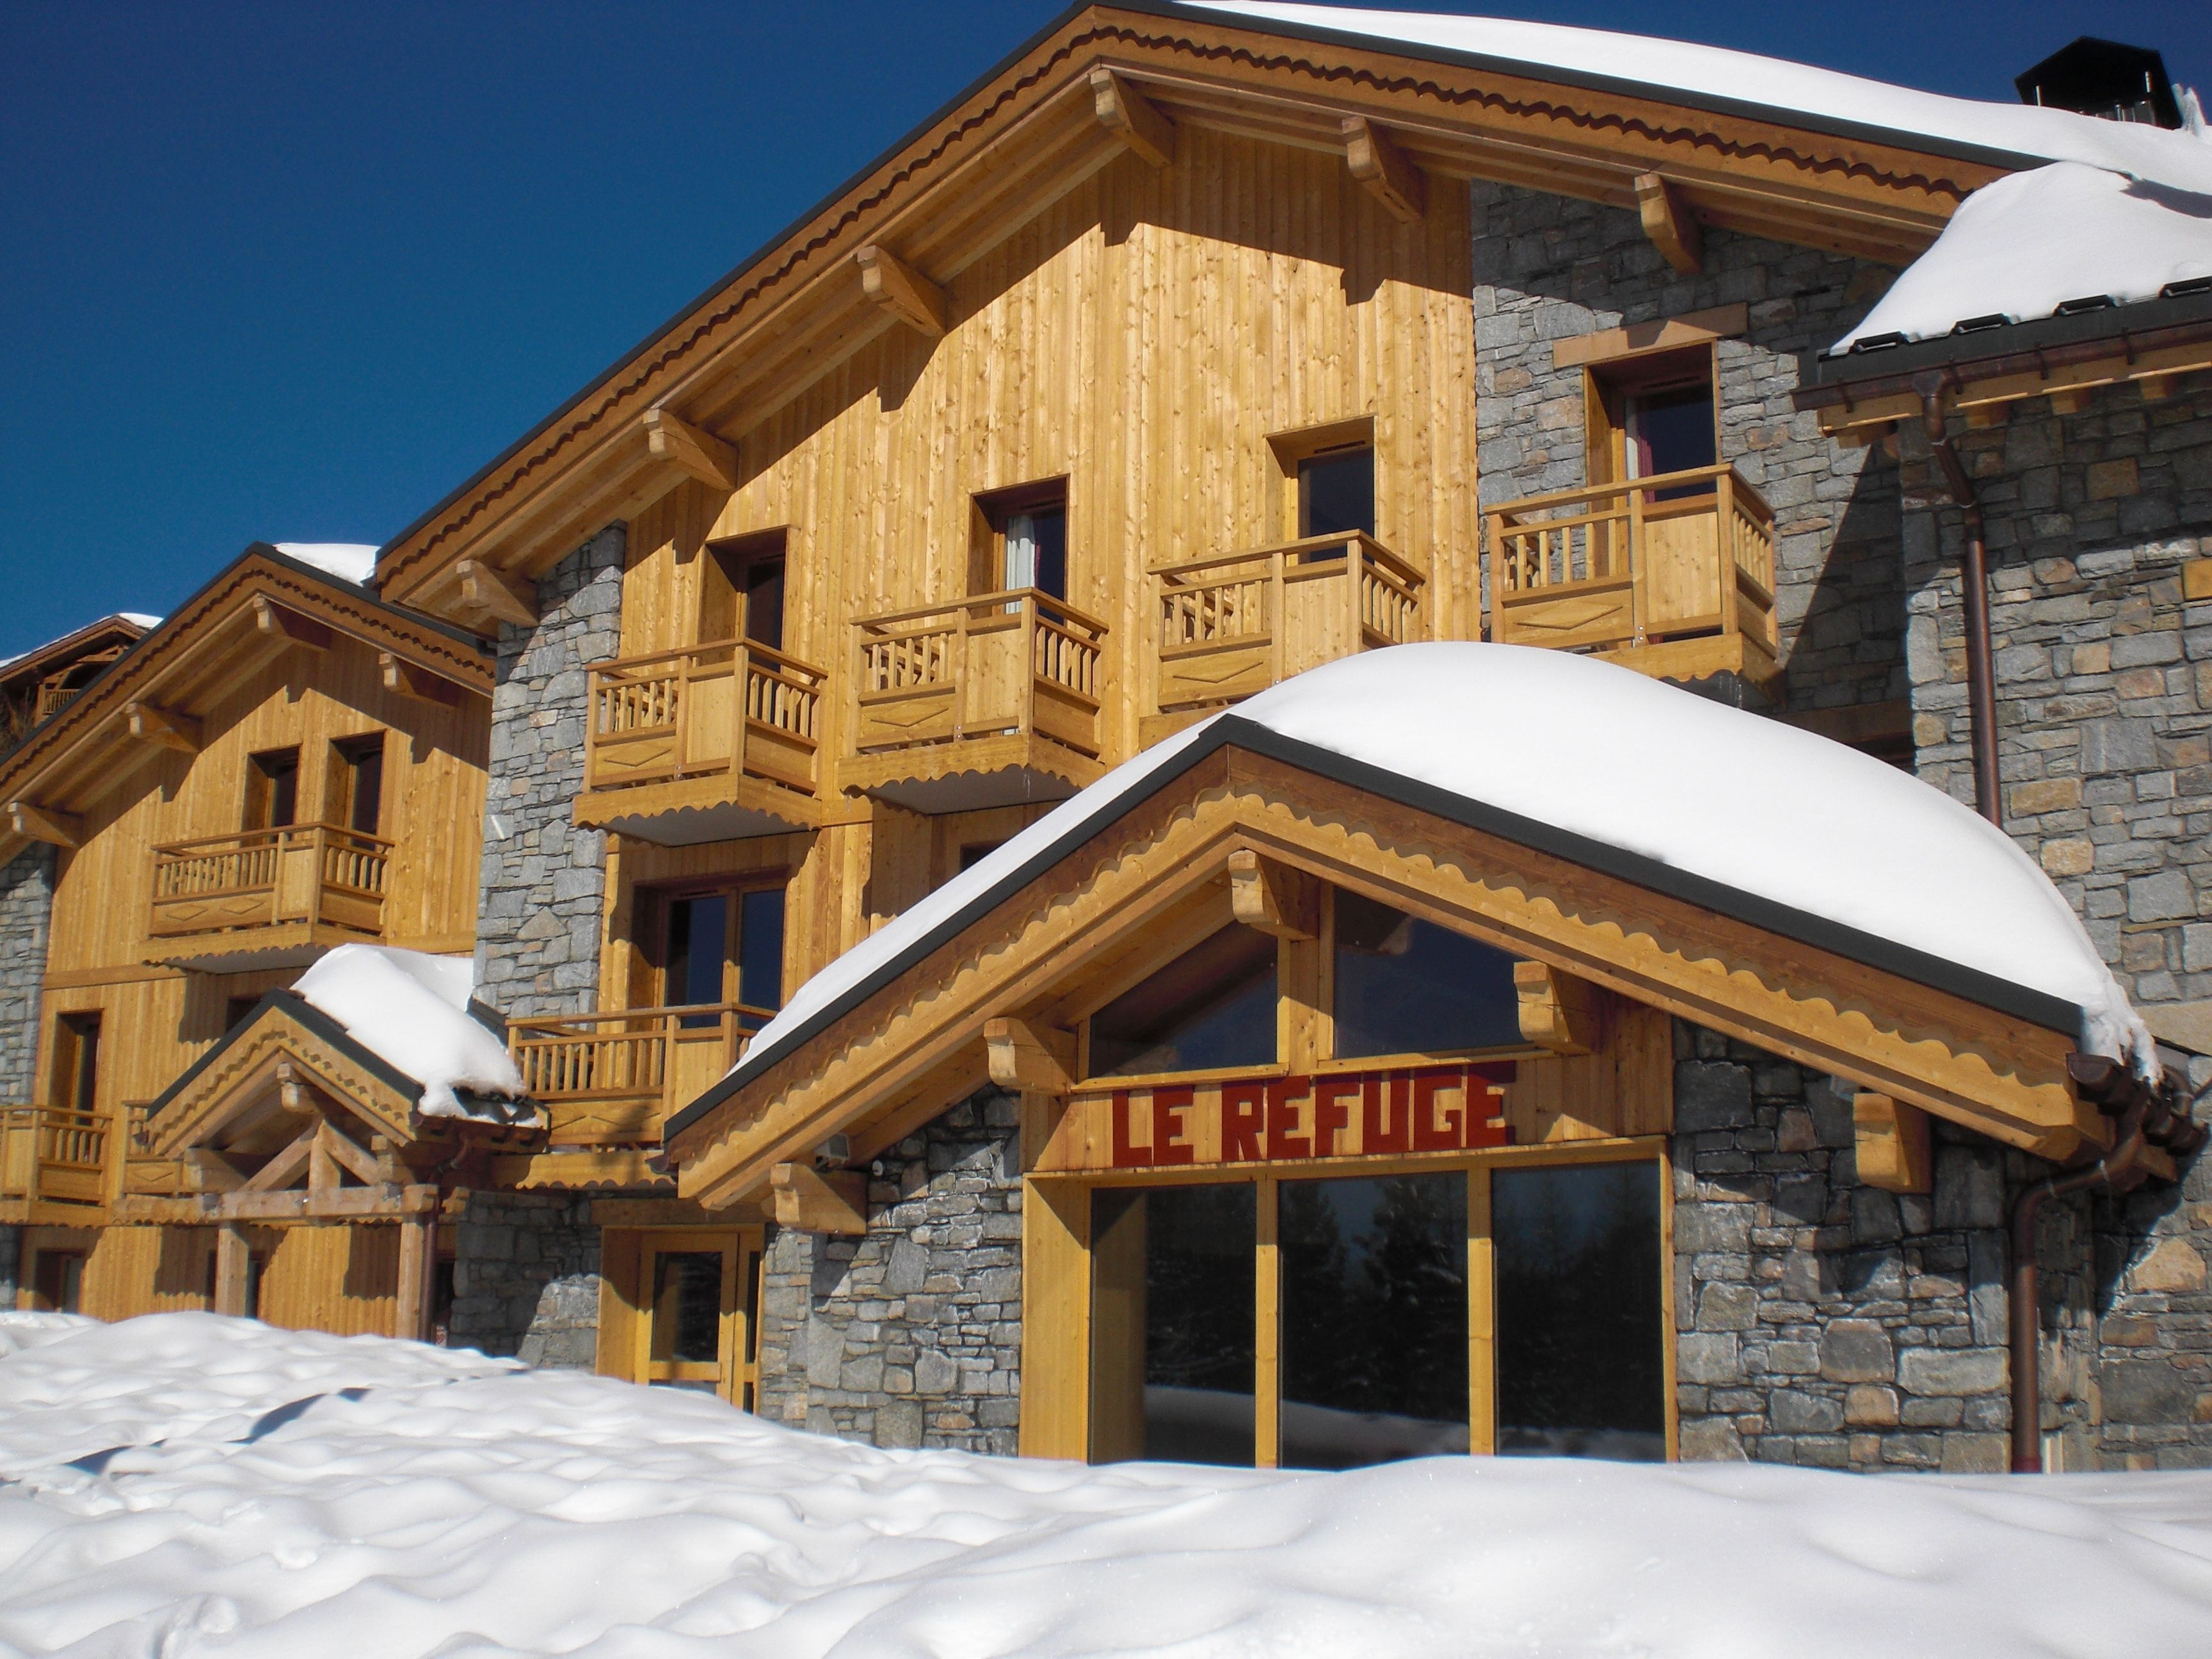 Chalet-appartement Altitude Le Refuge - 8-10 personen